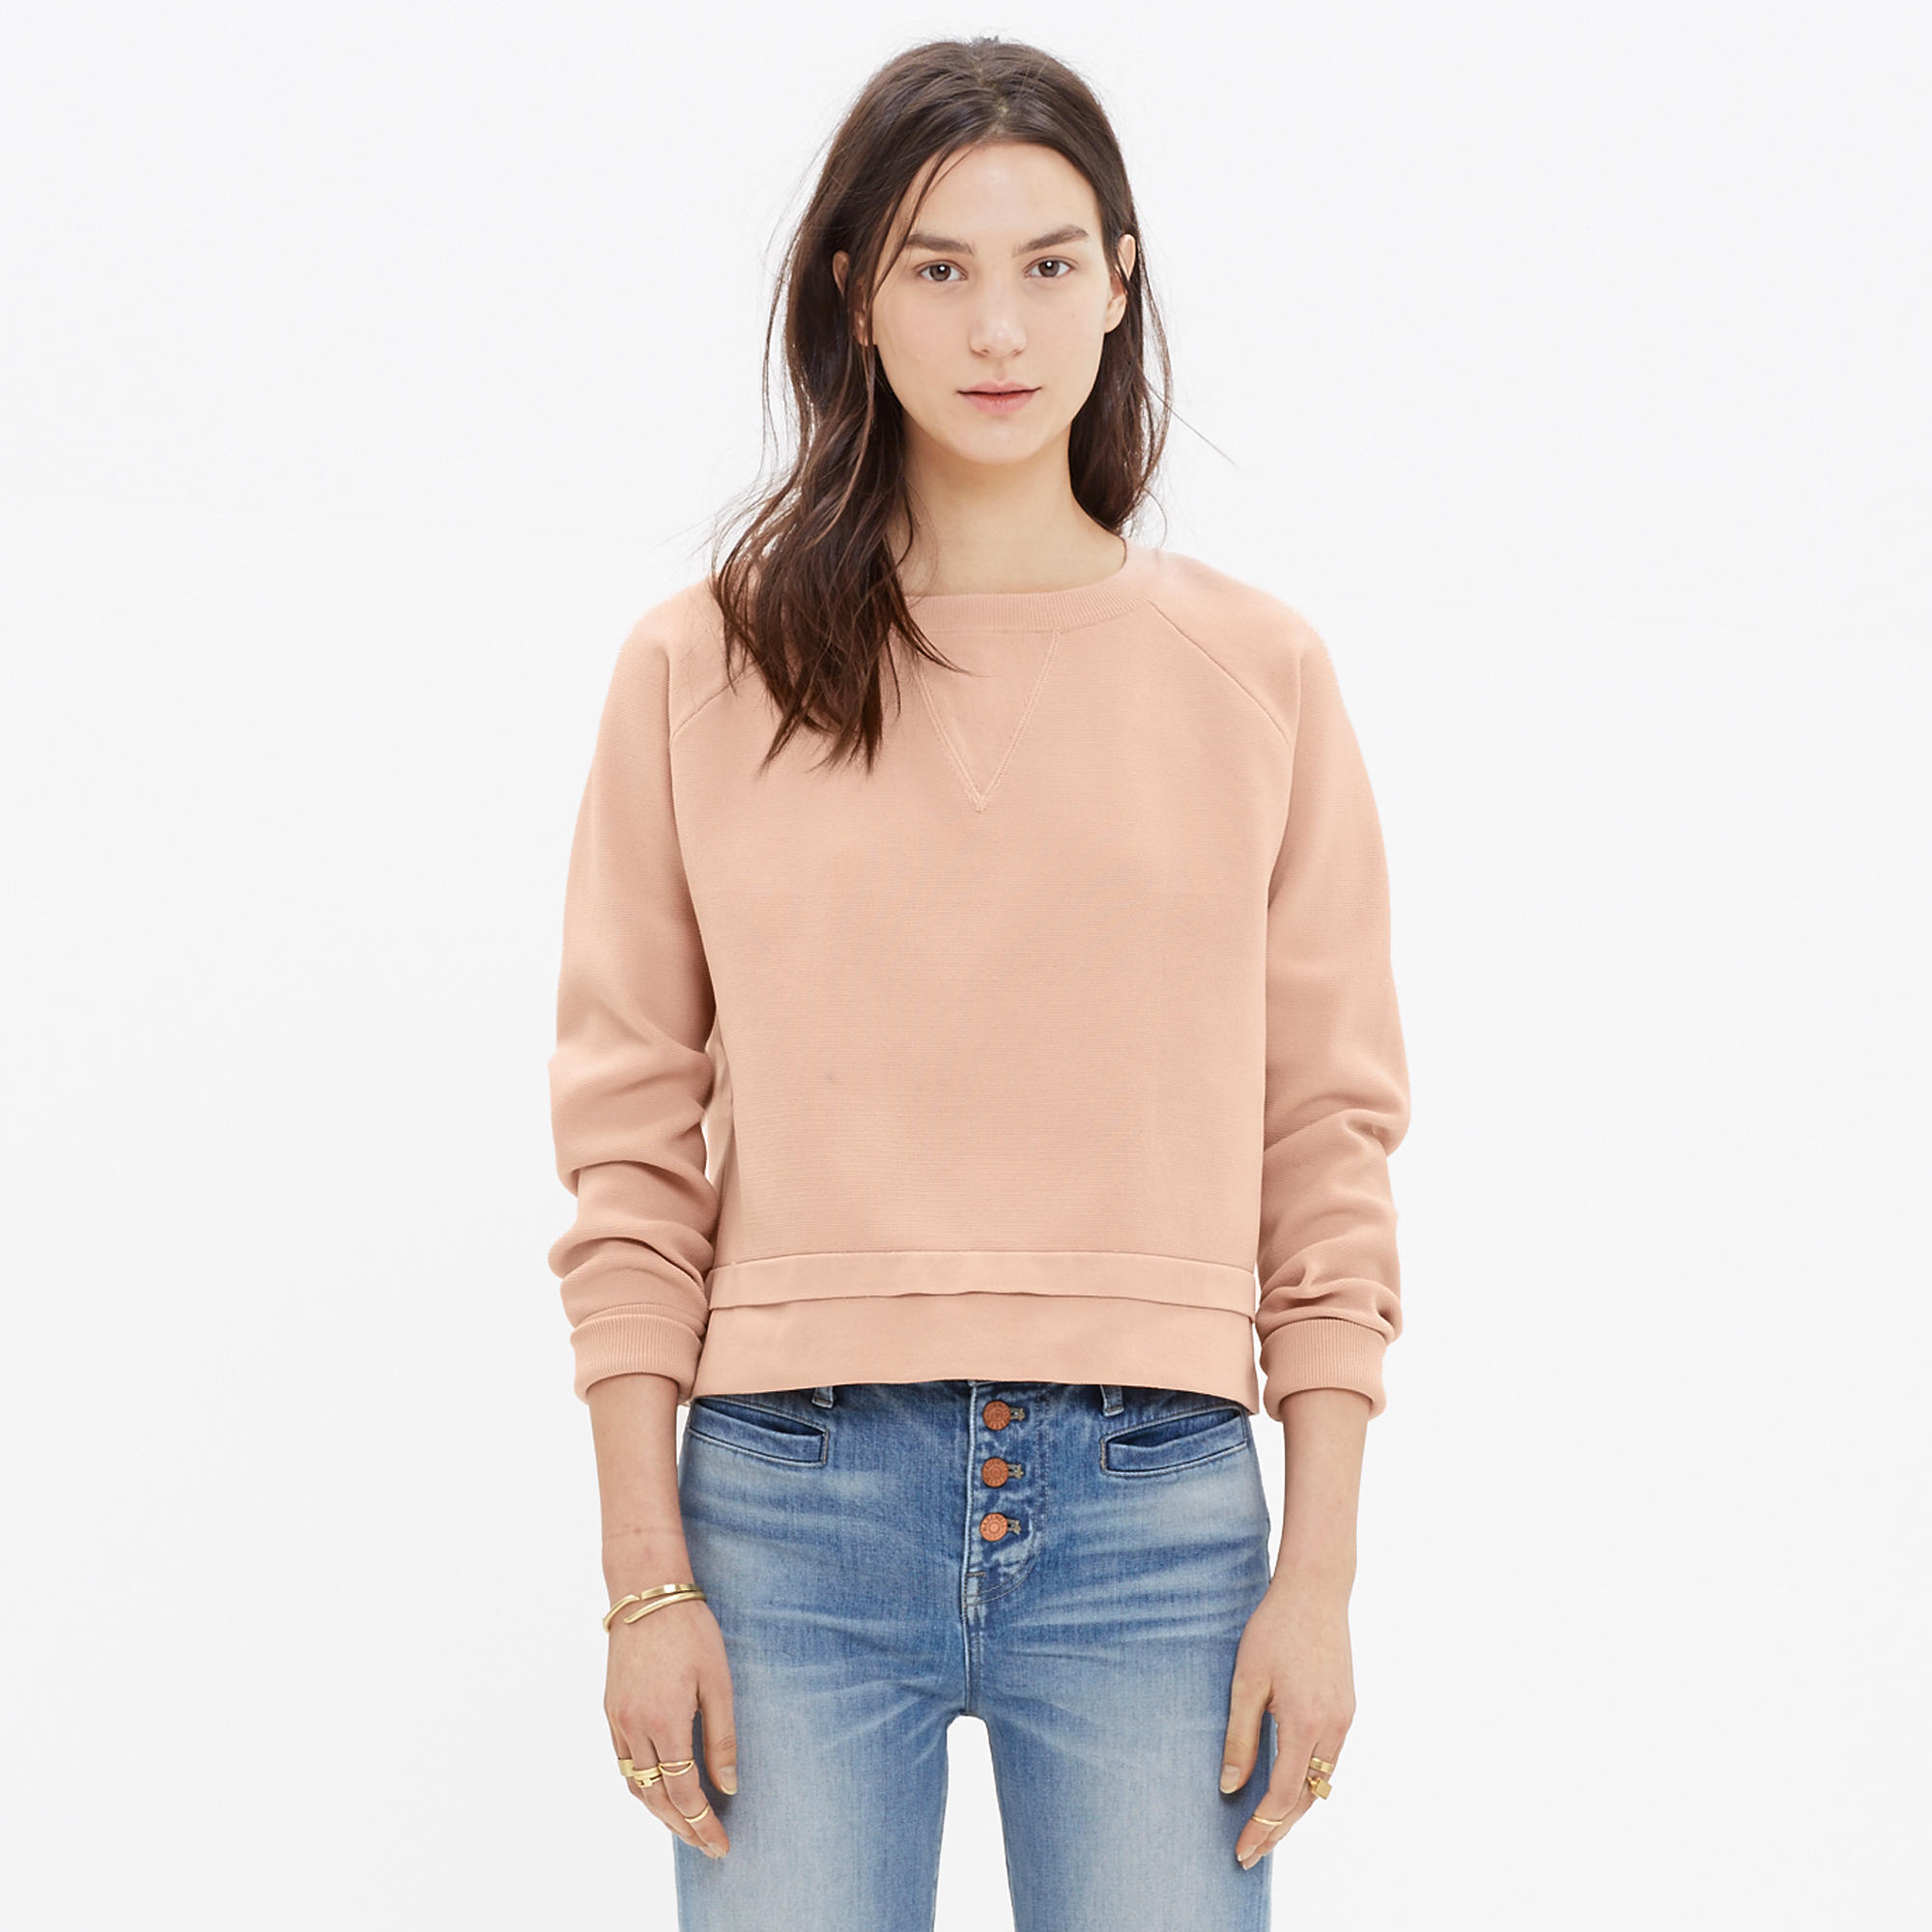 Soft-Tech Pullover Sweater : pullovers | Madewell